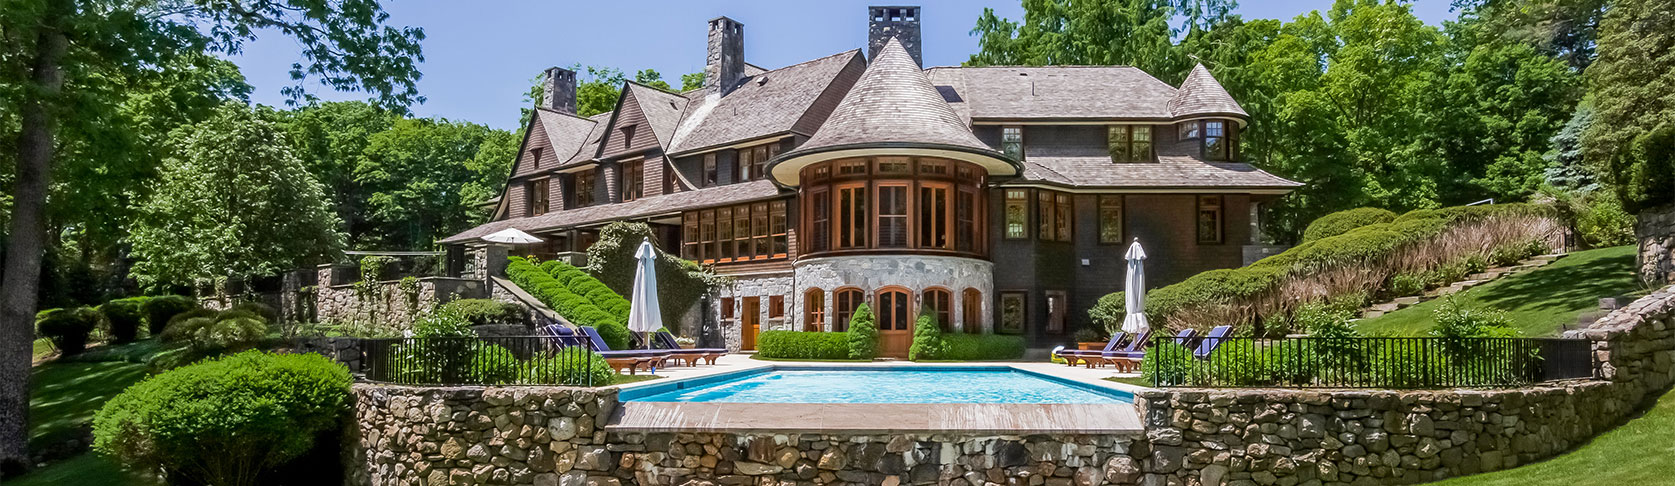 909 West Road, New Canaan, CT